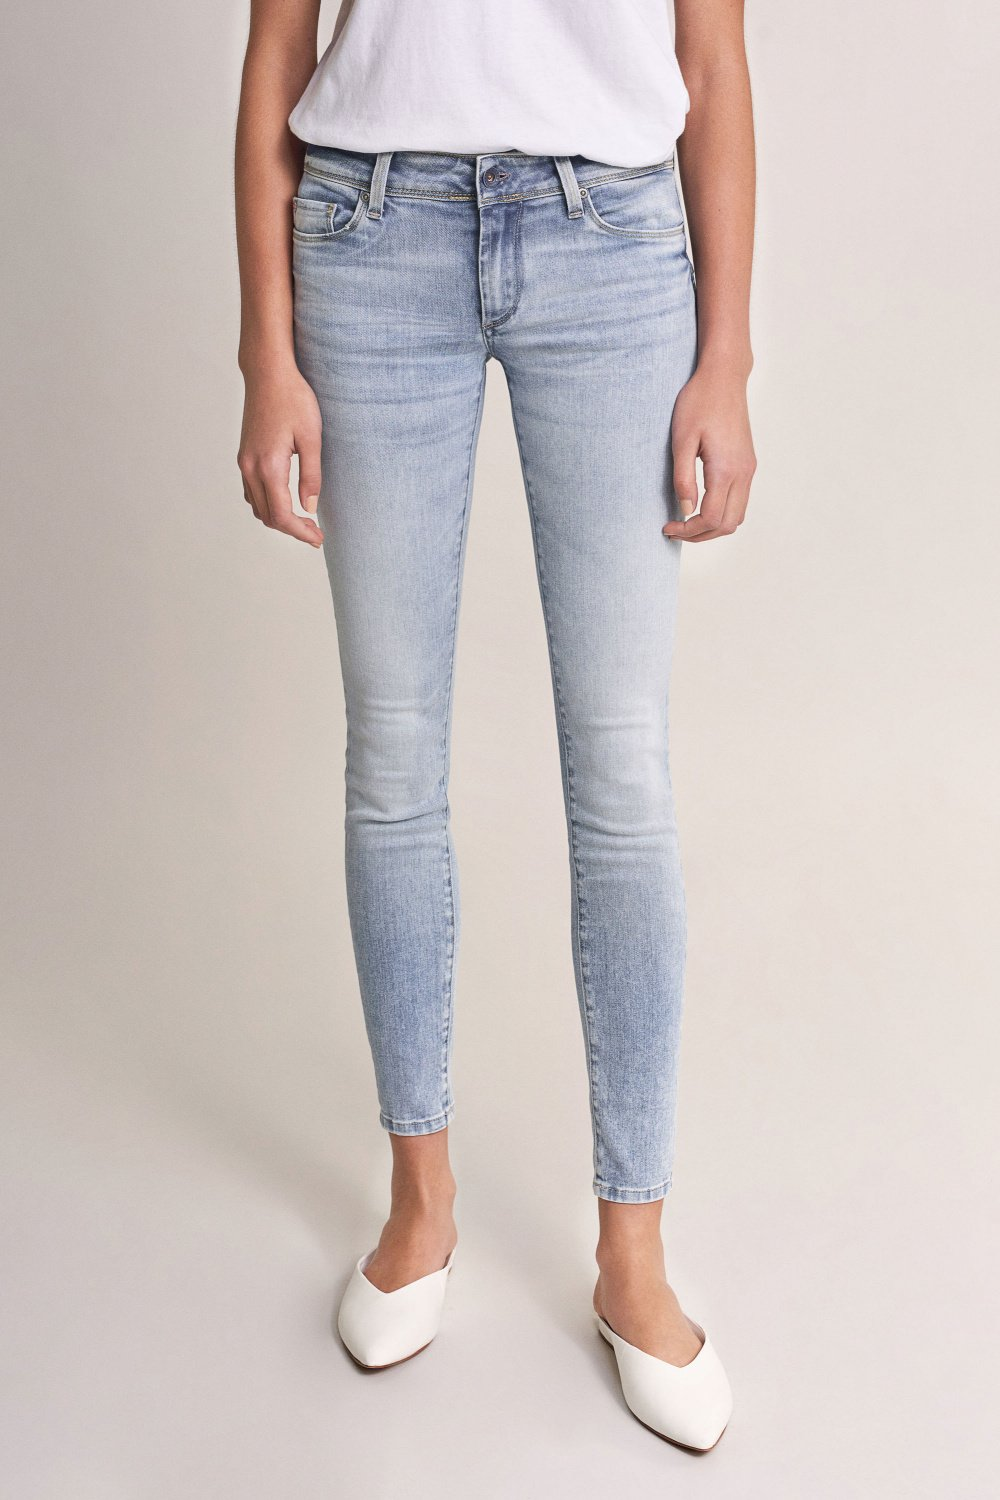 Push Up Wonder skinny light jeans - Salsa